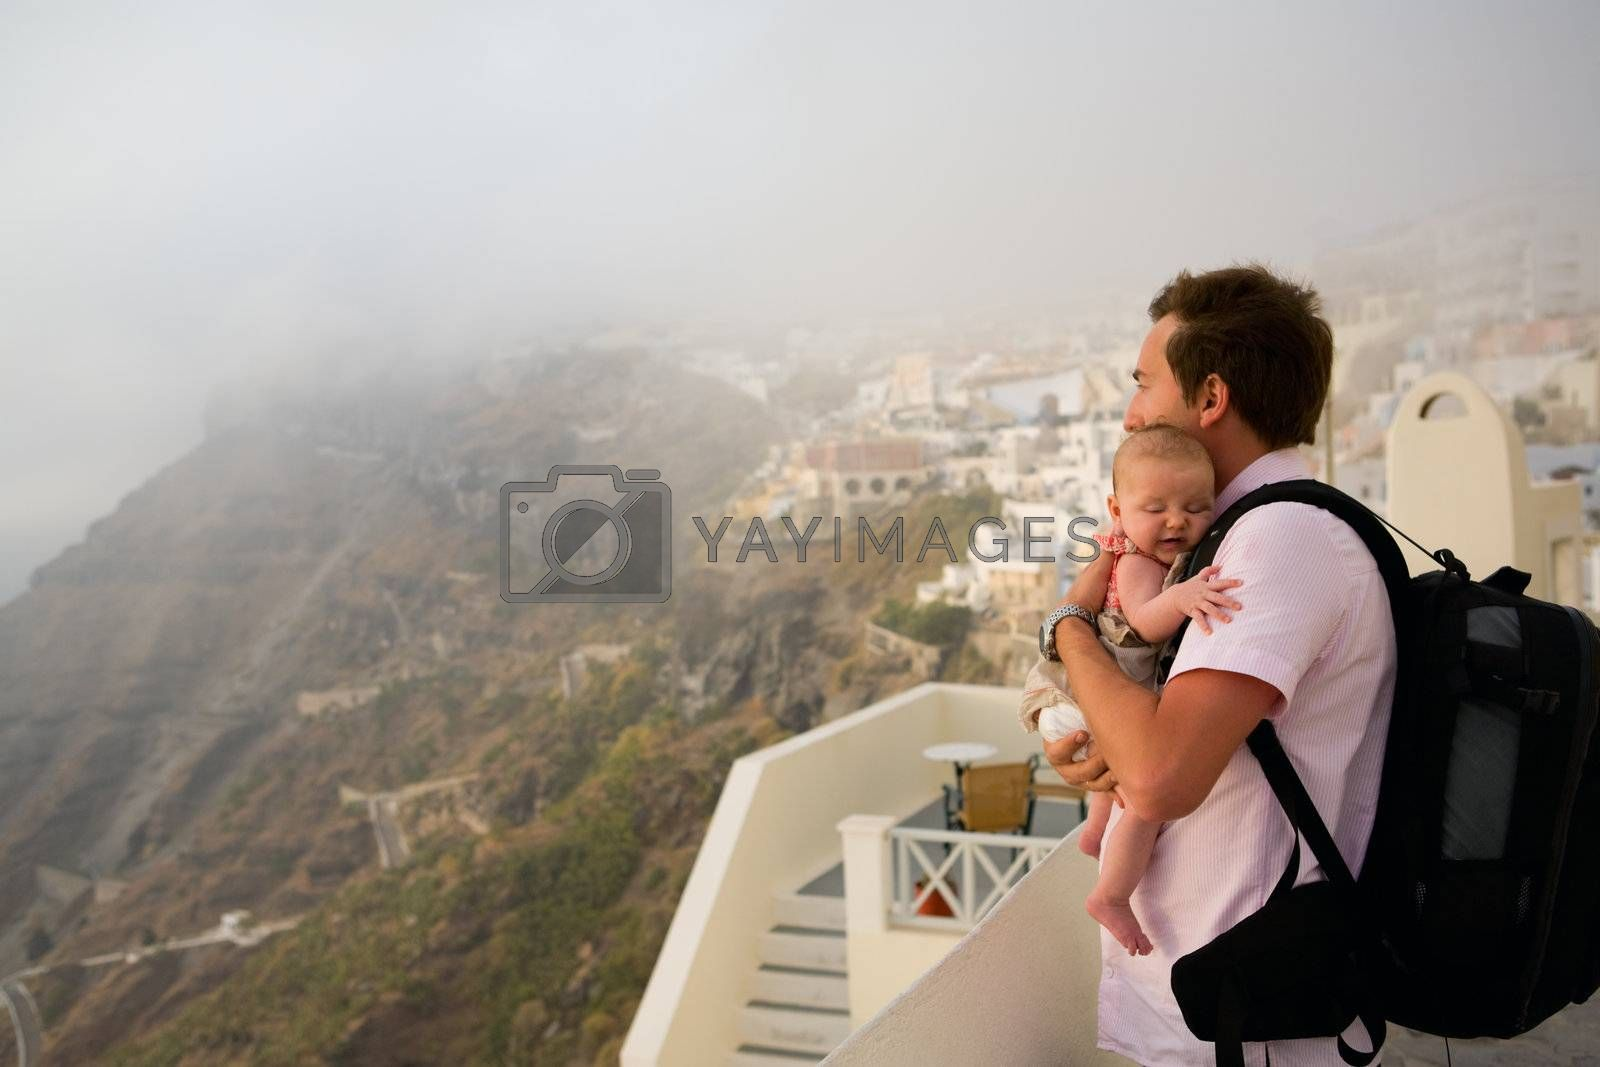 Father and his baby daughter enjoying views of town in fog